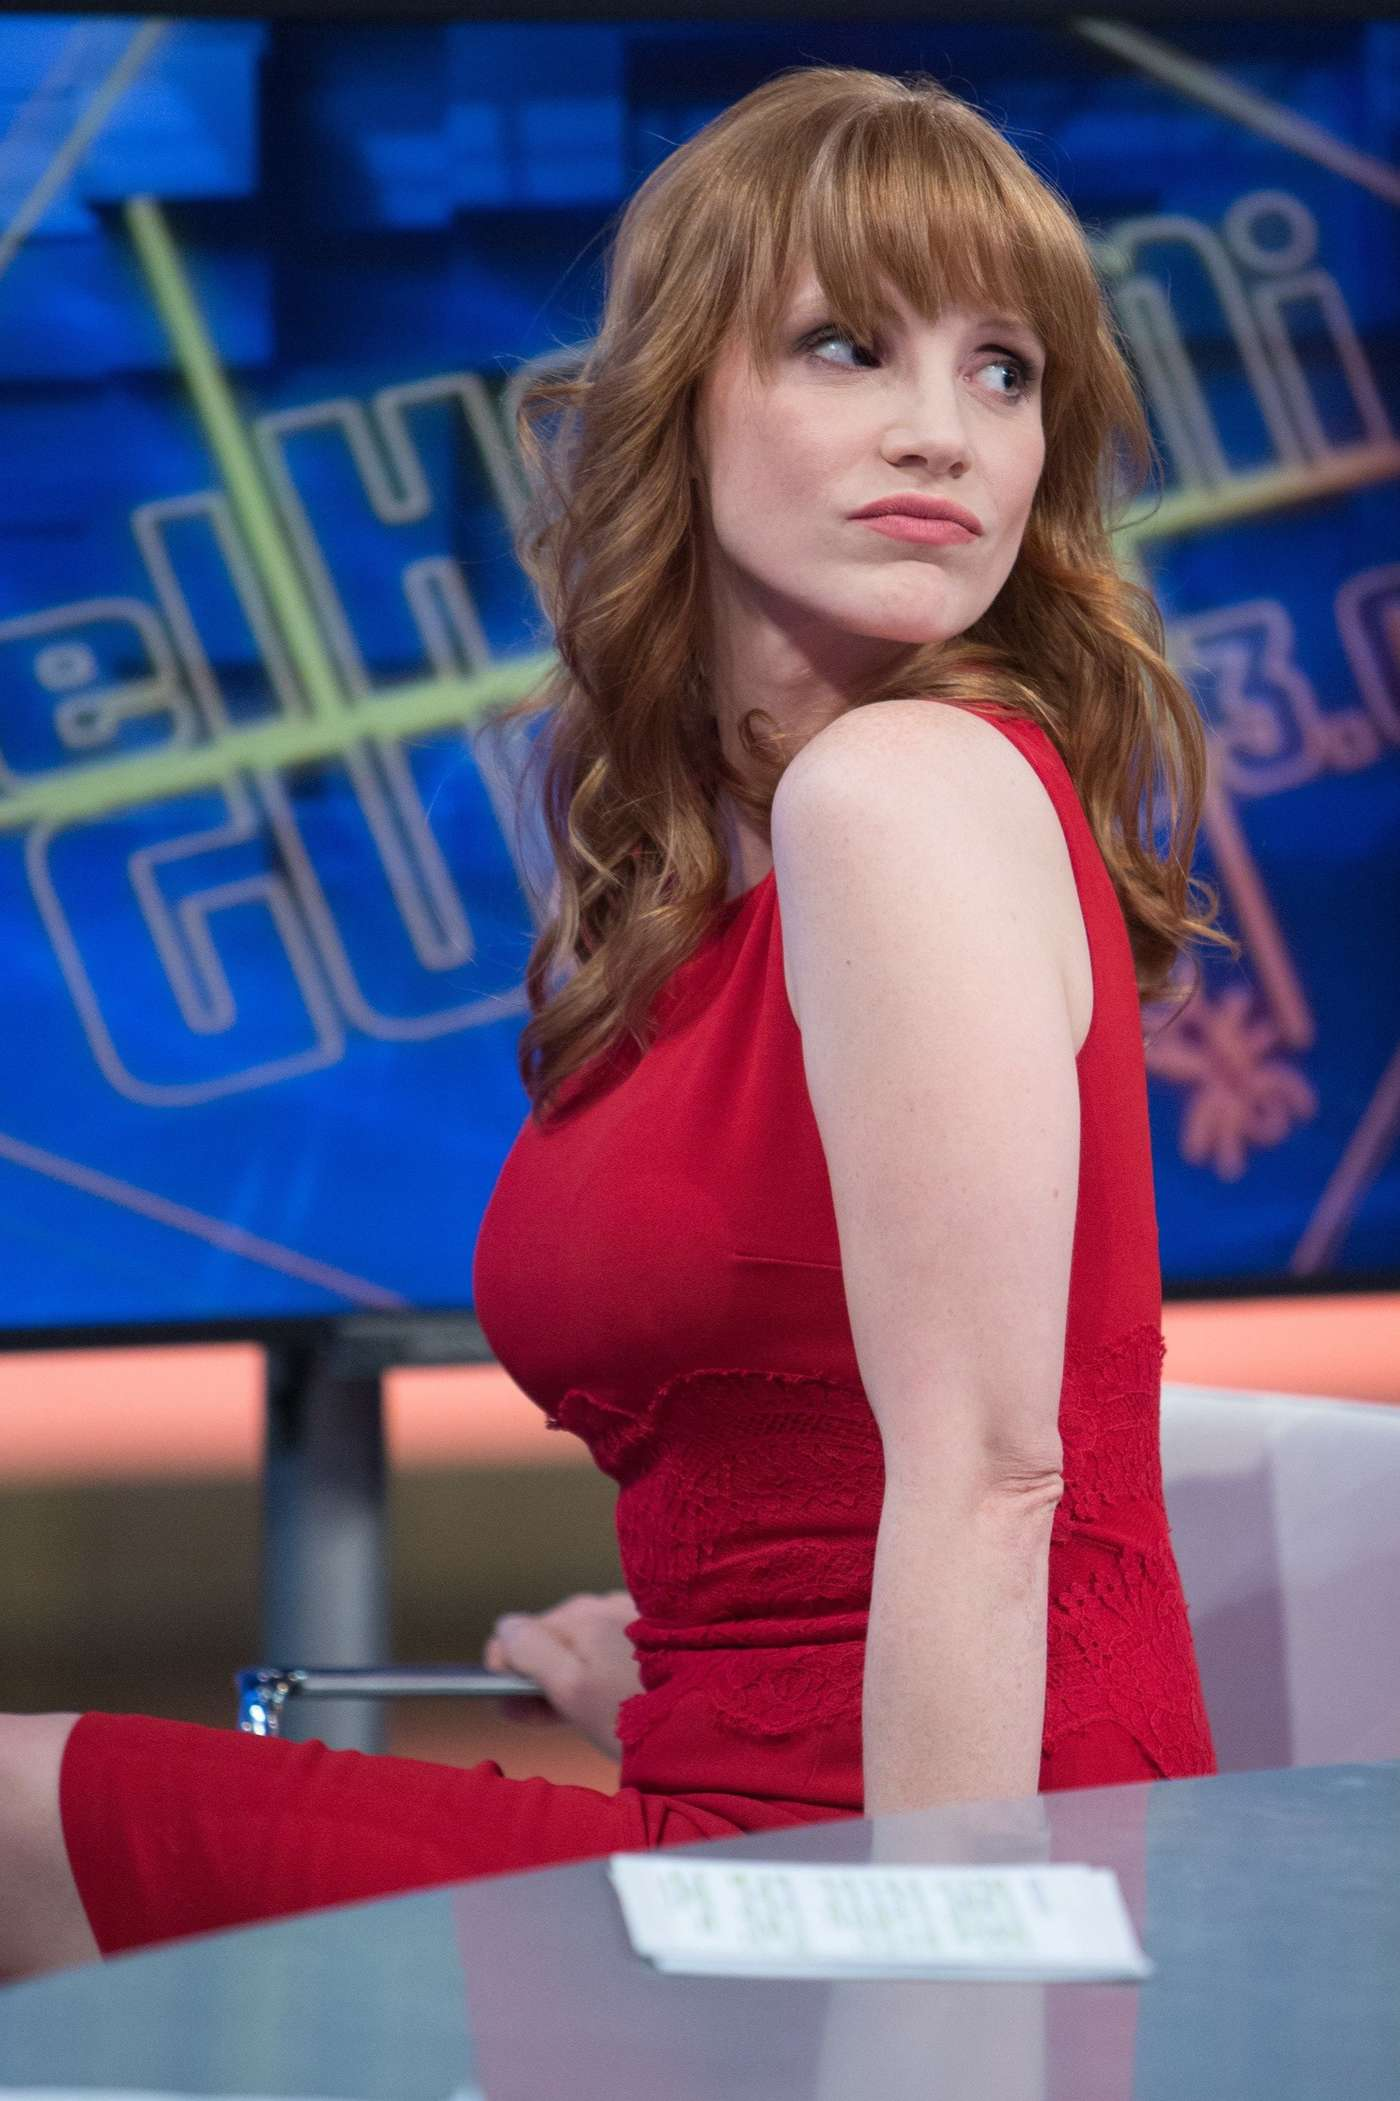 Jessica Chastain in Red Dress